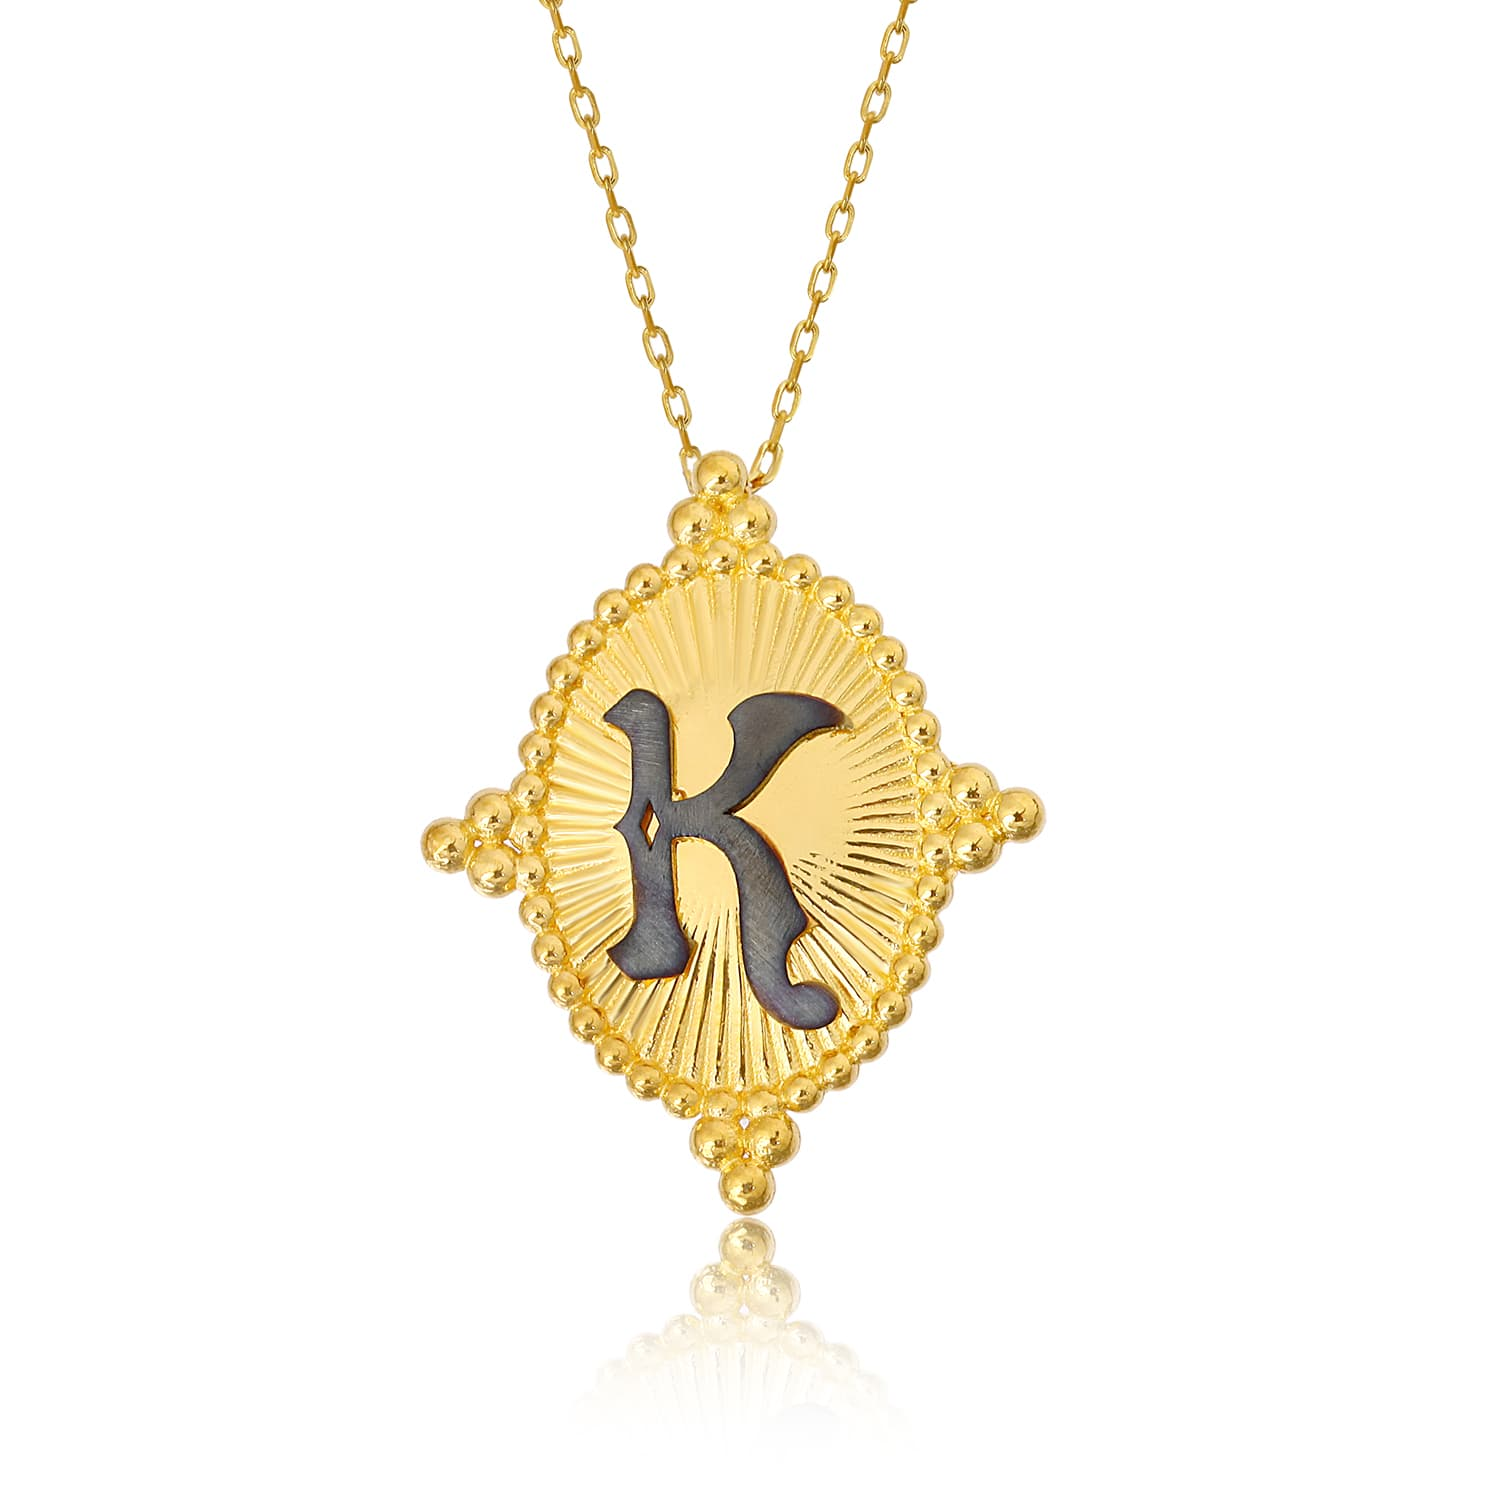 LETTER K VINTAGE NECKLACE